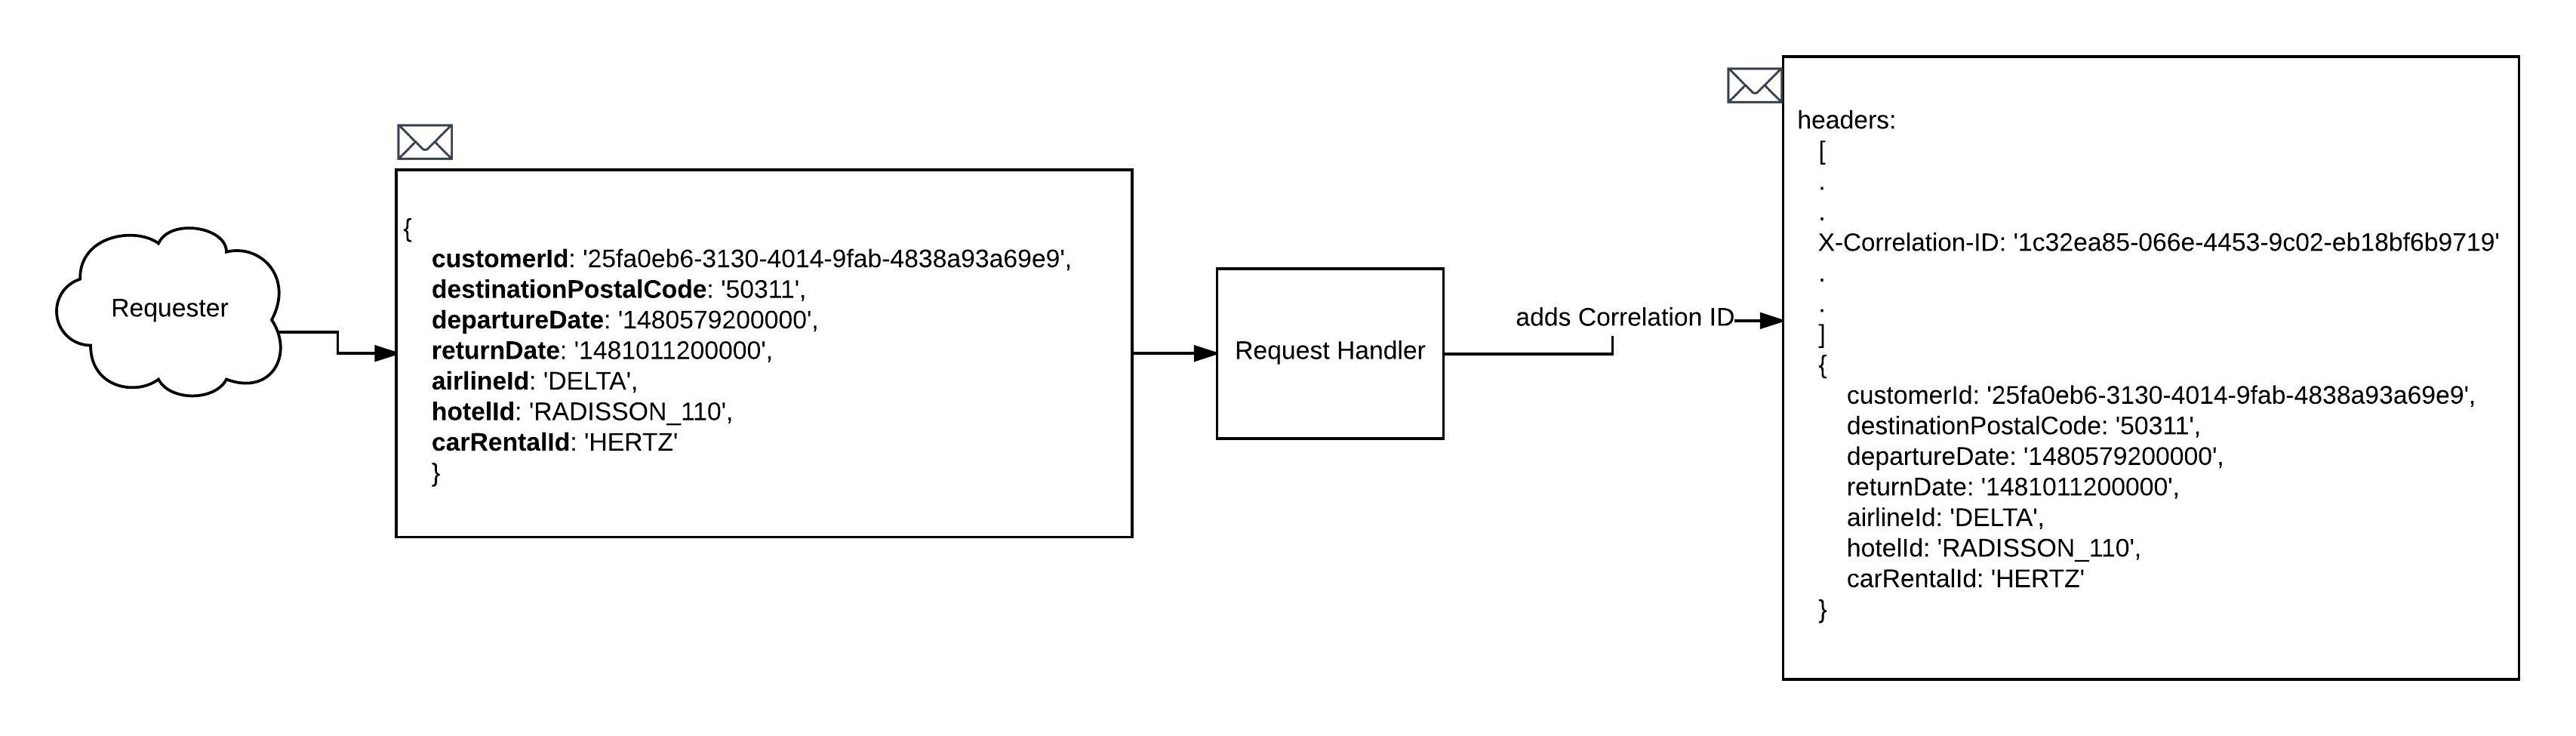 Figure 2: Create and assign a CorrelationID to the message header before it is needed for use in the distributed system.